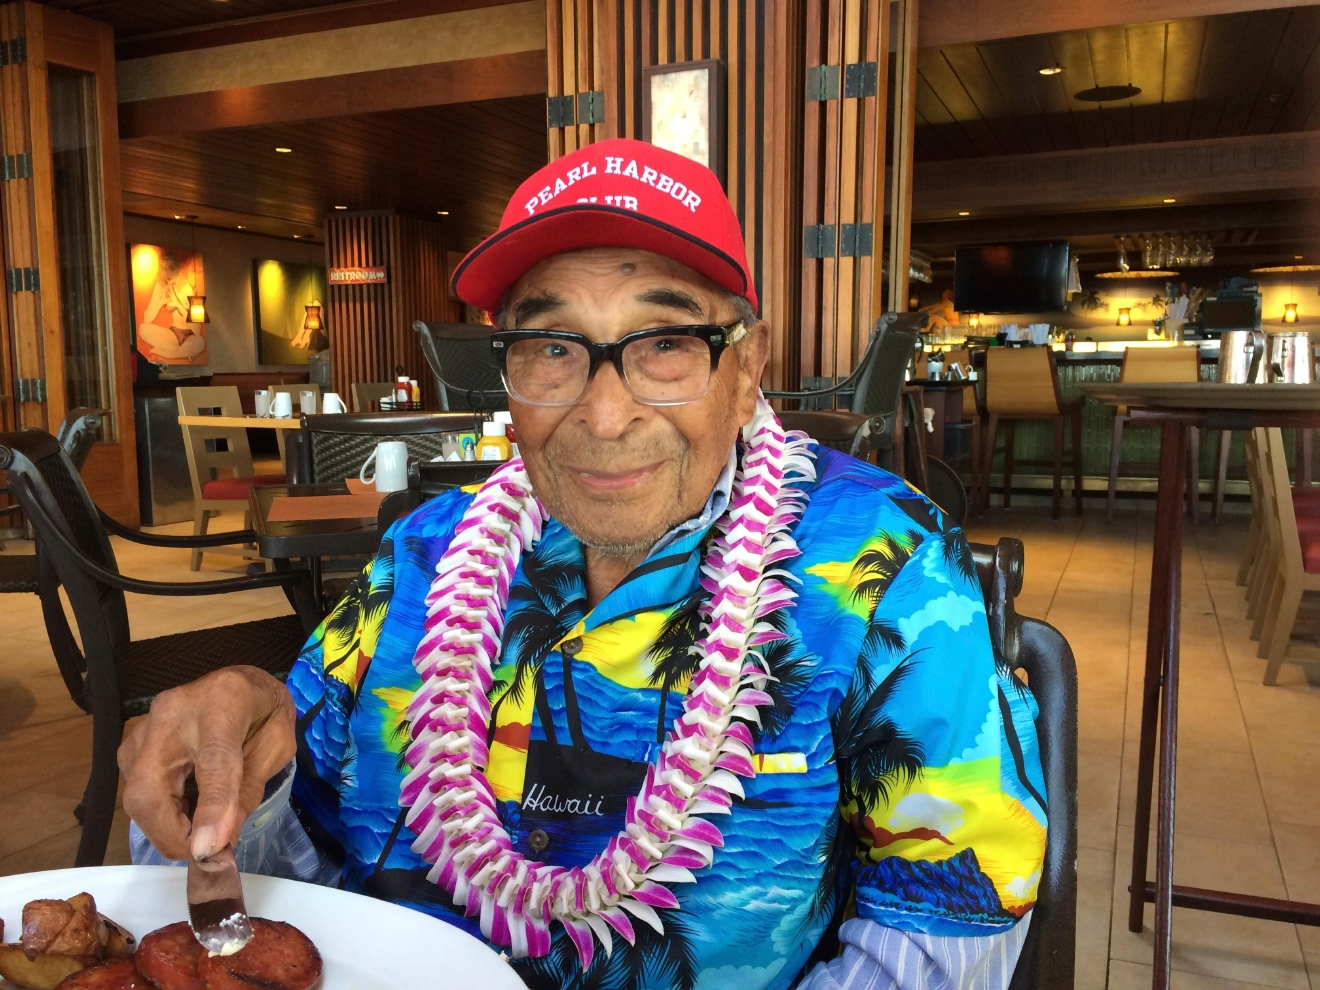 In this Monday, Dec. 5, 2016 photo, Ray Chavez, a Pearl Harbor survivor from Poway, Calif., pauses while eating breakfast in Honolulu. Chavez was out on a minesweeper, the USS Condor, in the early hours before the attack. Chavez is among a few dozen survivors of the Japanese attack on Pearl Harbor who plan to gather at the Hawaii naval base, Wednesday, Dec. 7, 2016, to remember those killed 75 years ago.  (AP Photo/Audrey McAvoy)